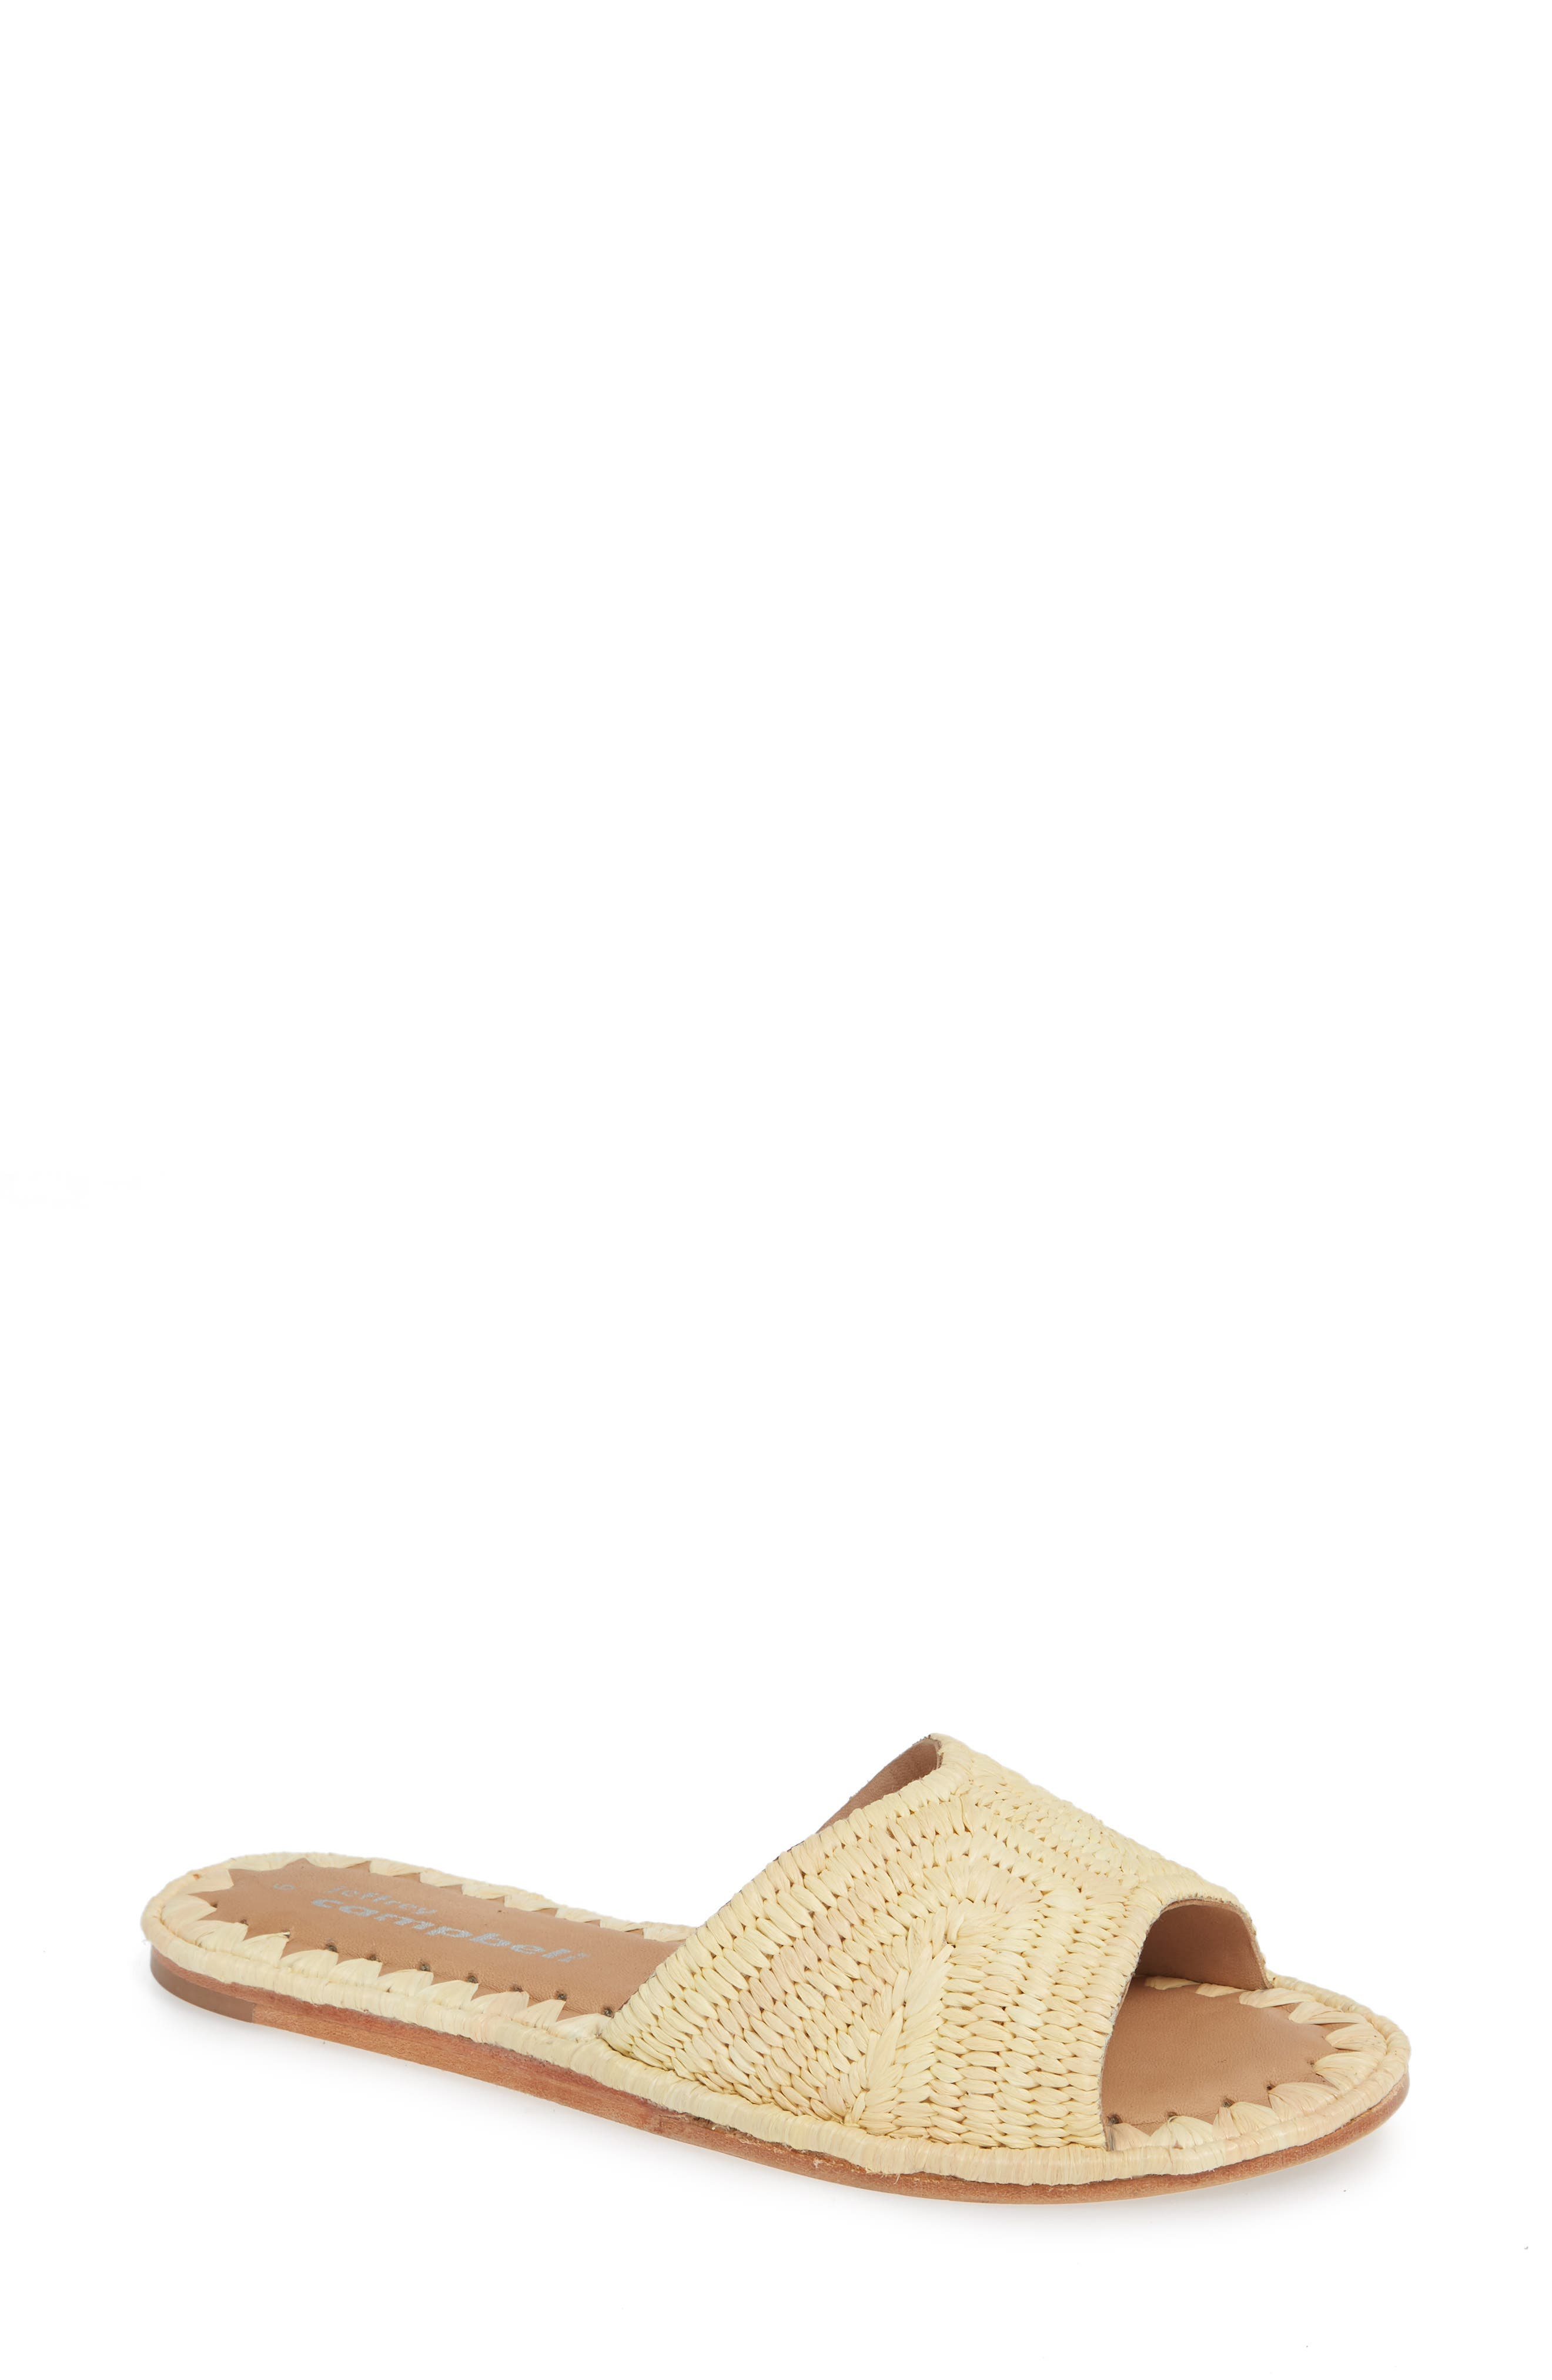 Dane Raffia Slide Sandal,                             Main thumbnail 1, color,                             NATURAL RAFFIA